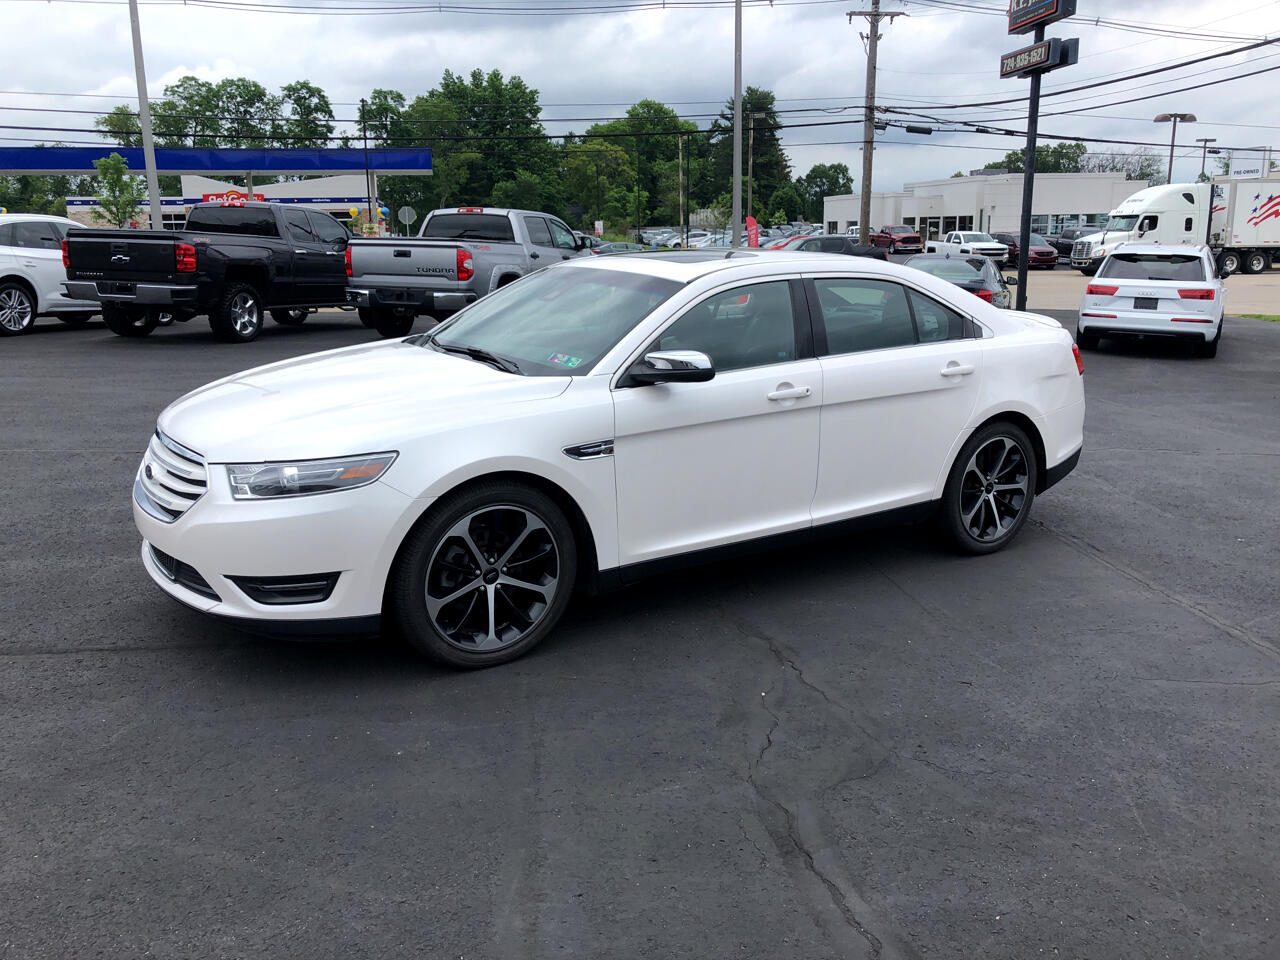 Ford Taurus 4dr Sdn Limited AWD 2015